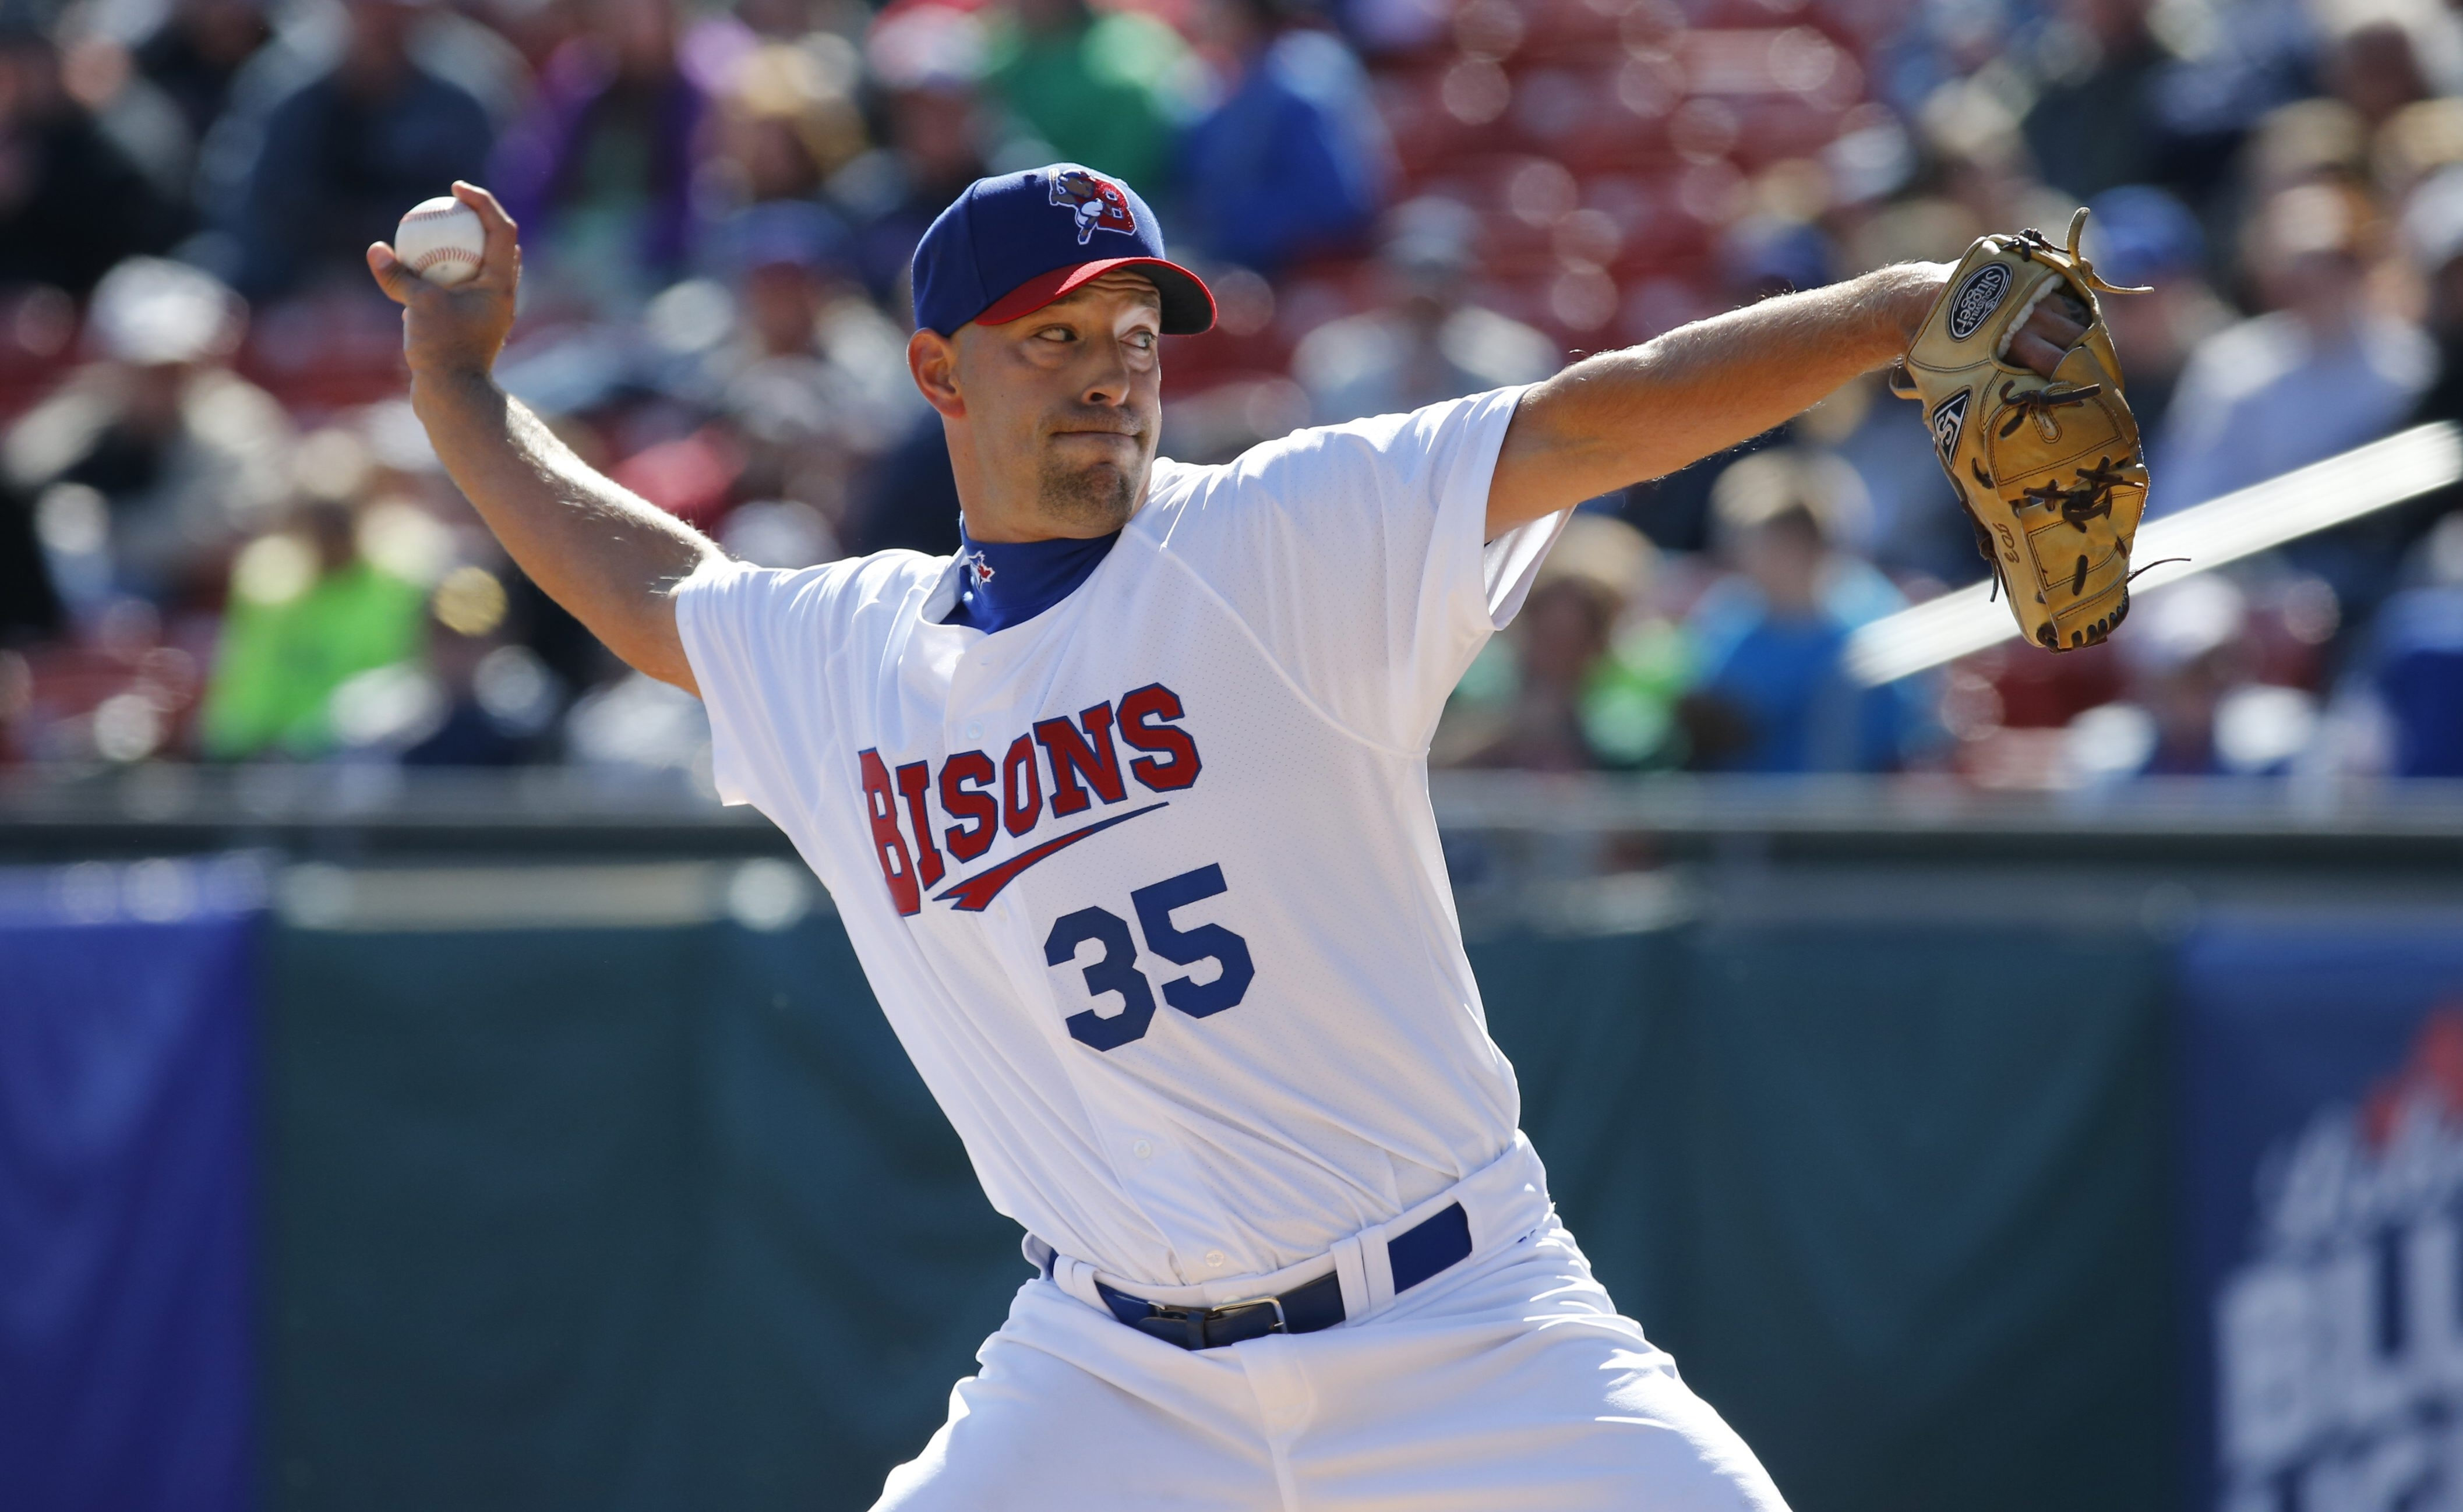 Buffalo Bisons relief pitcher David Aardsma throws in the 9th inning against the Rochester Red Wings at Coca-Cola Field on Thursday, April 14, 2016. (Harry Scull Jr./Buffalo News)